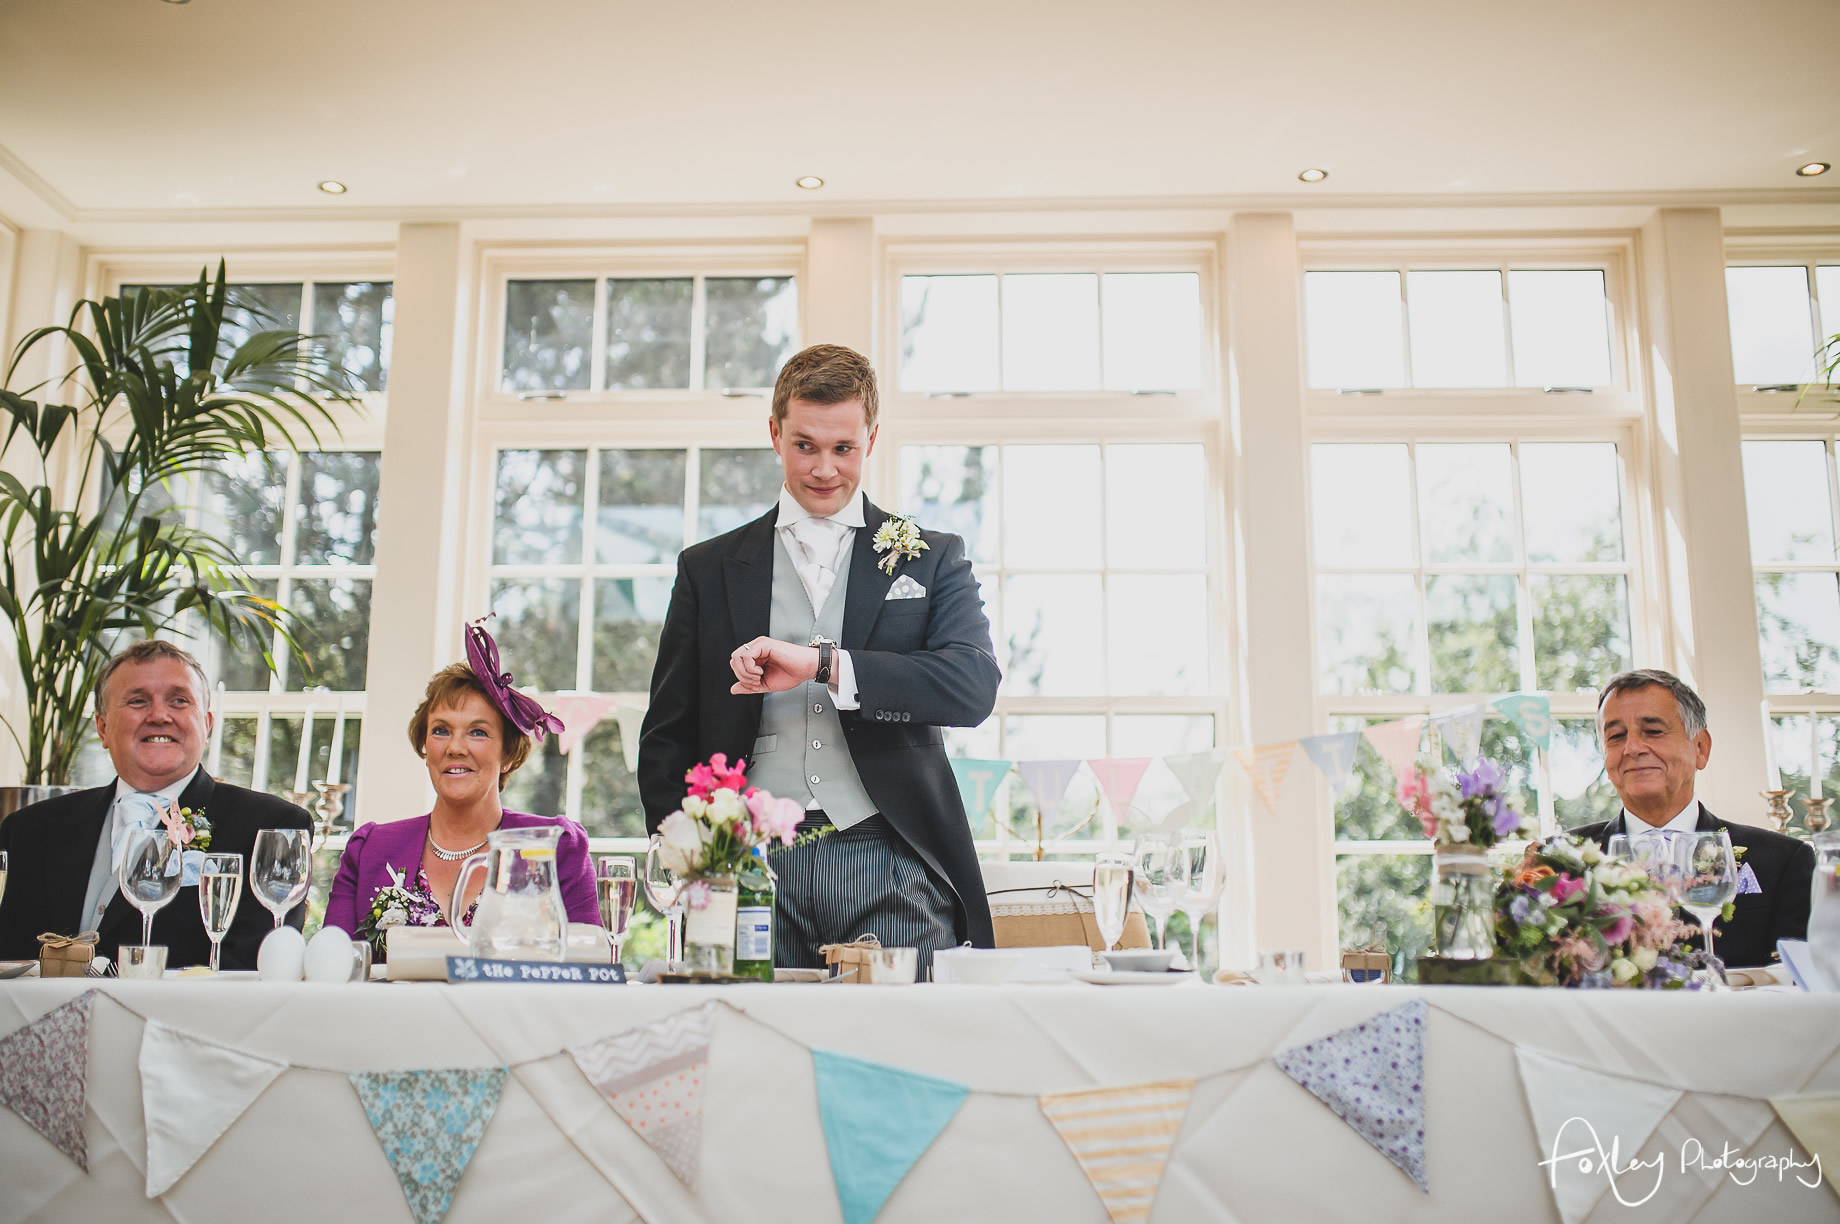 Claire and James' Wedding at Mitton Hall 121